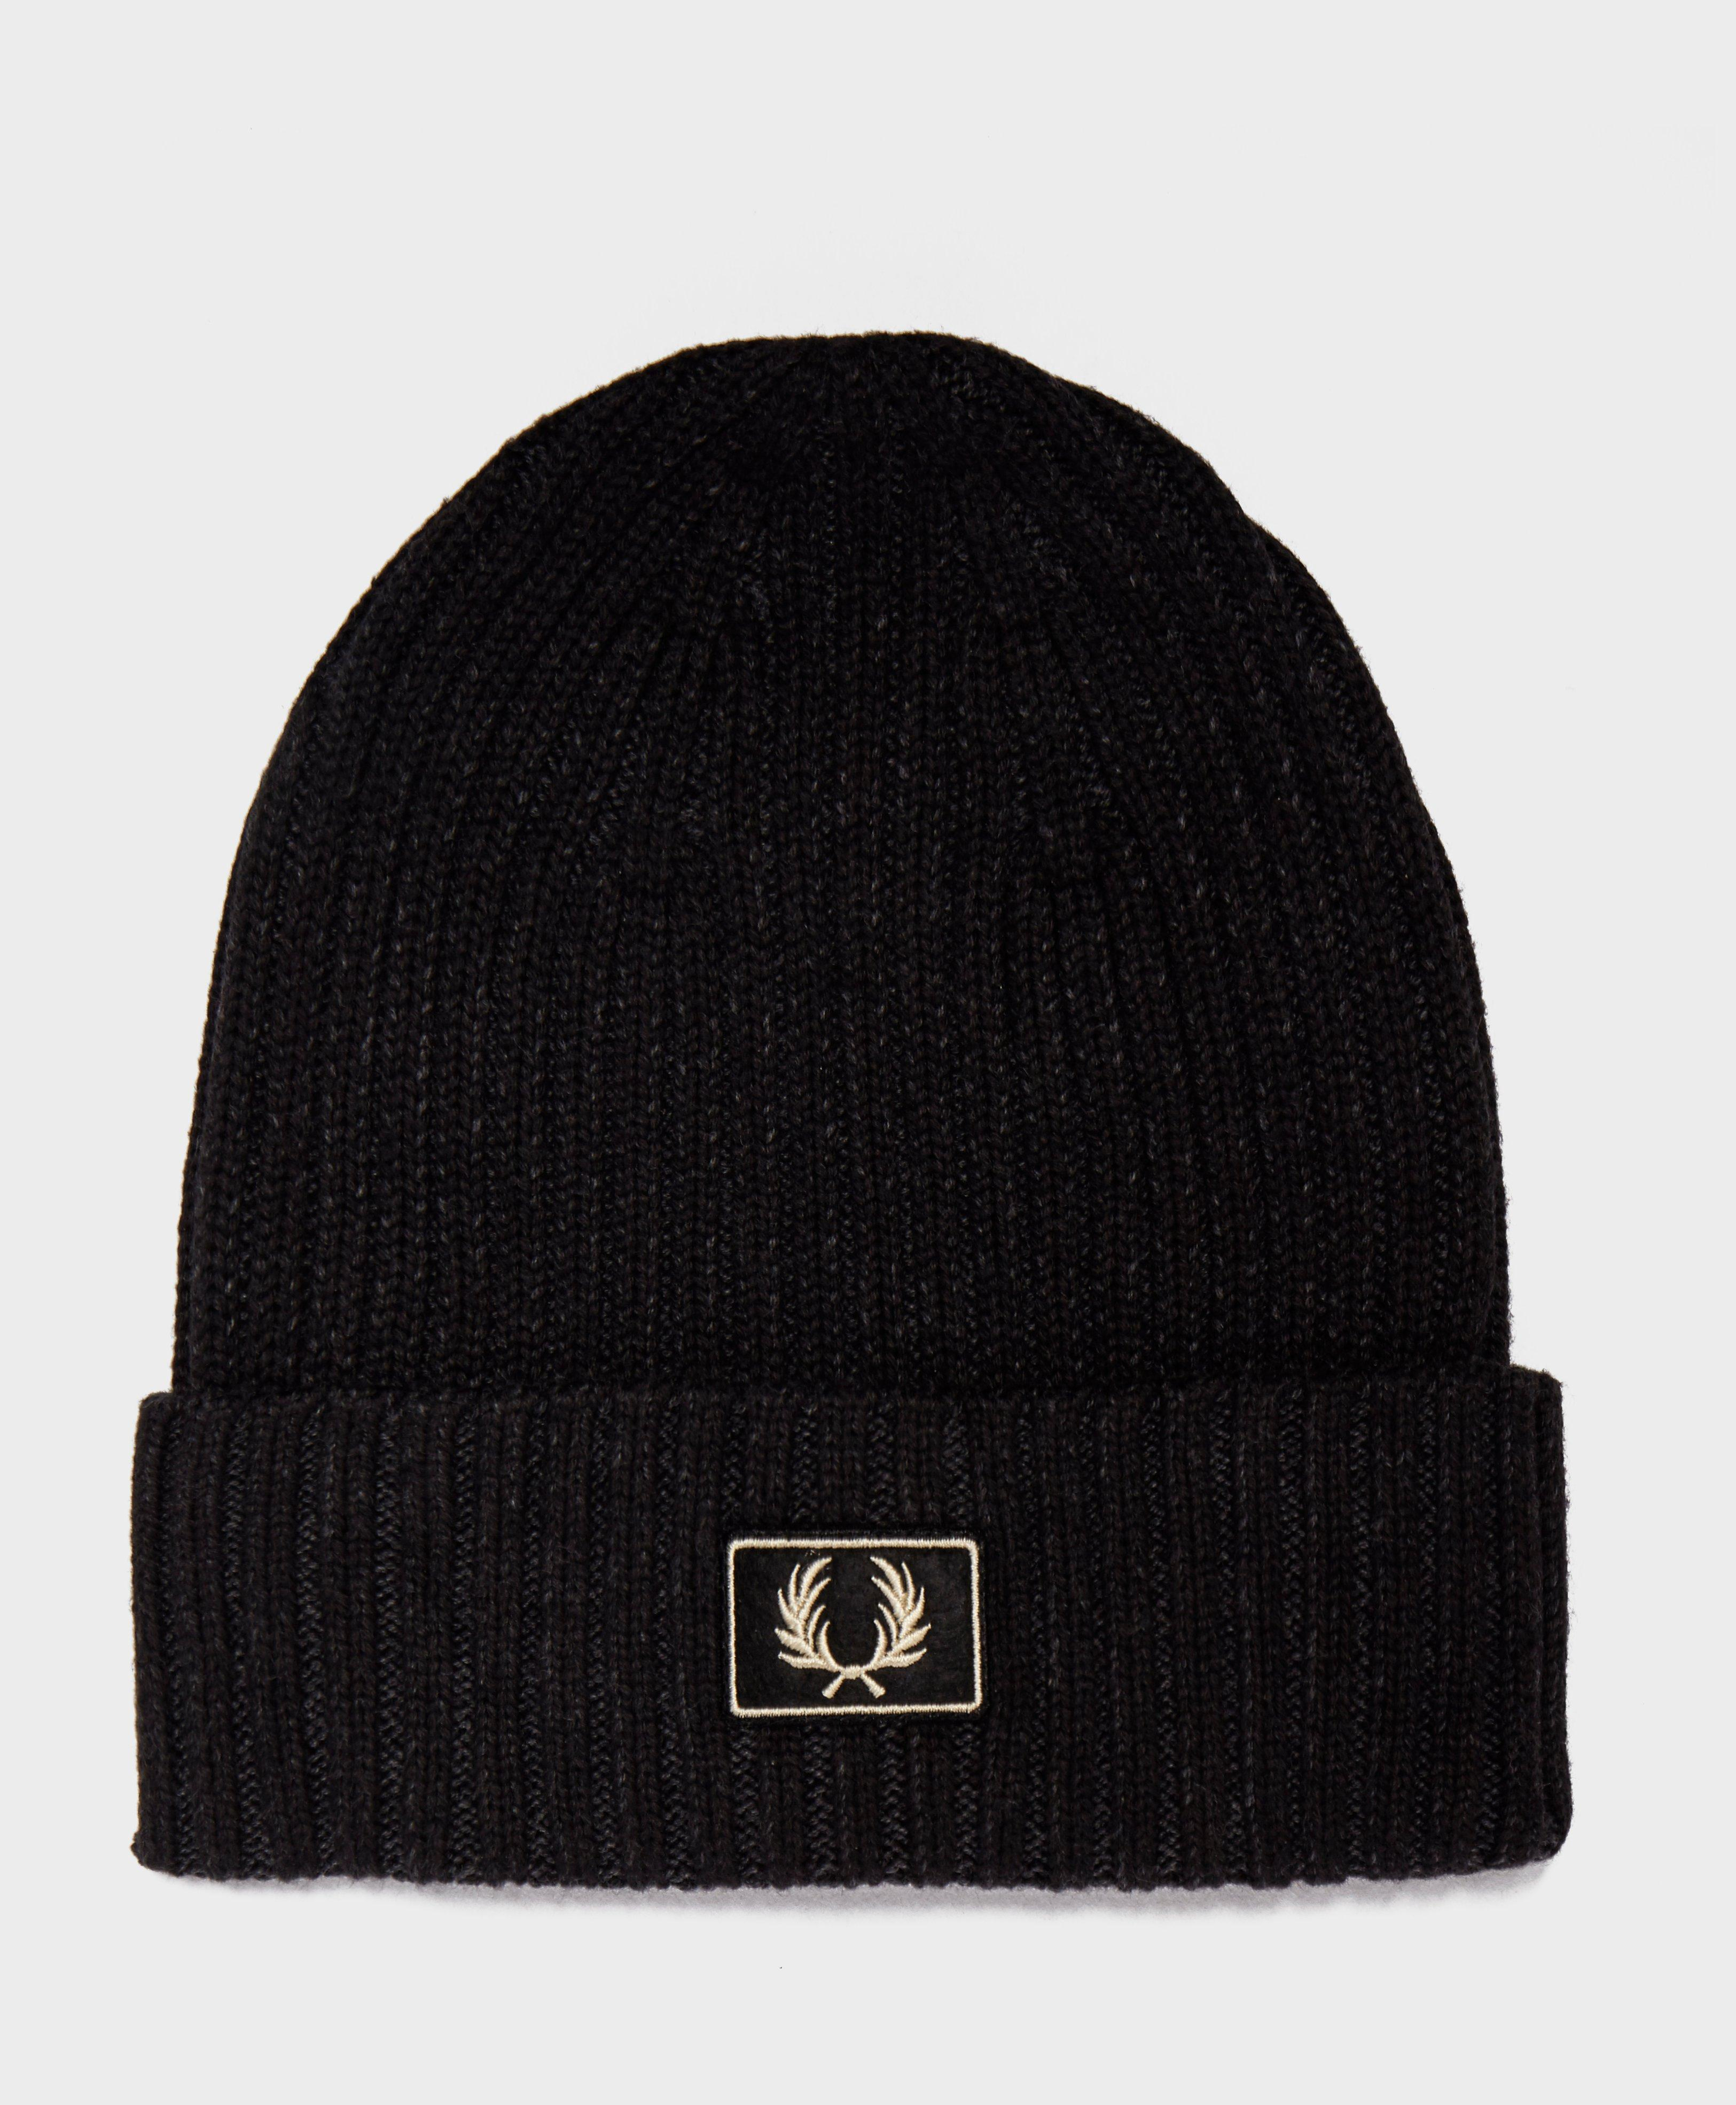 ee6657be965 Fred Perry Two Tone Beanie in Black for Men - Lyst